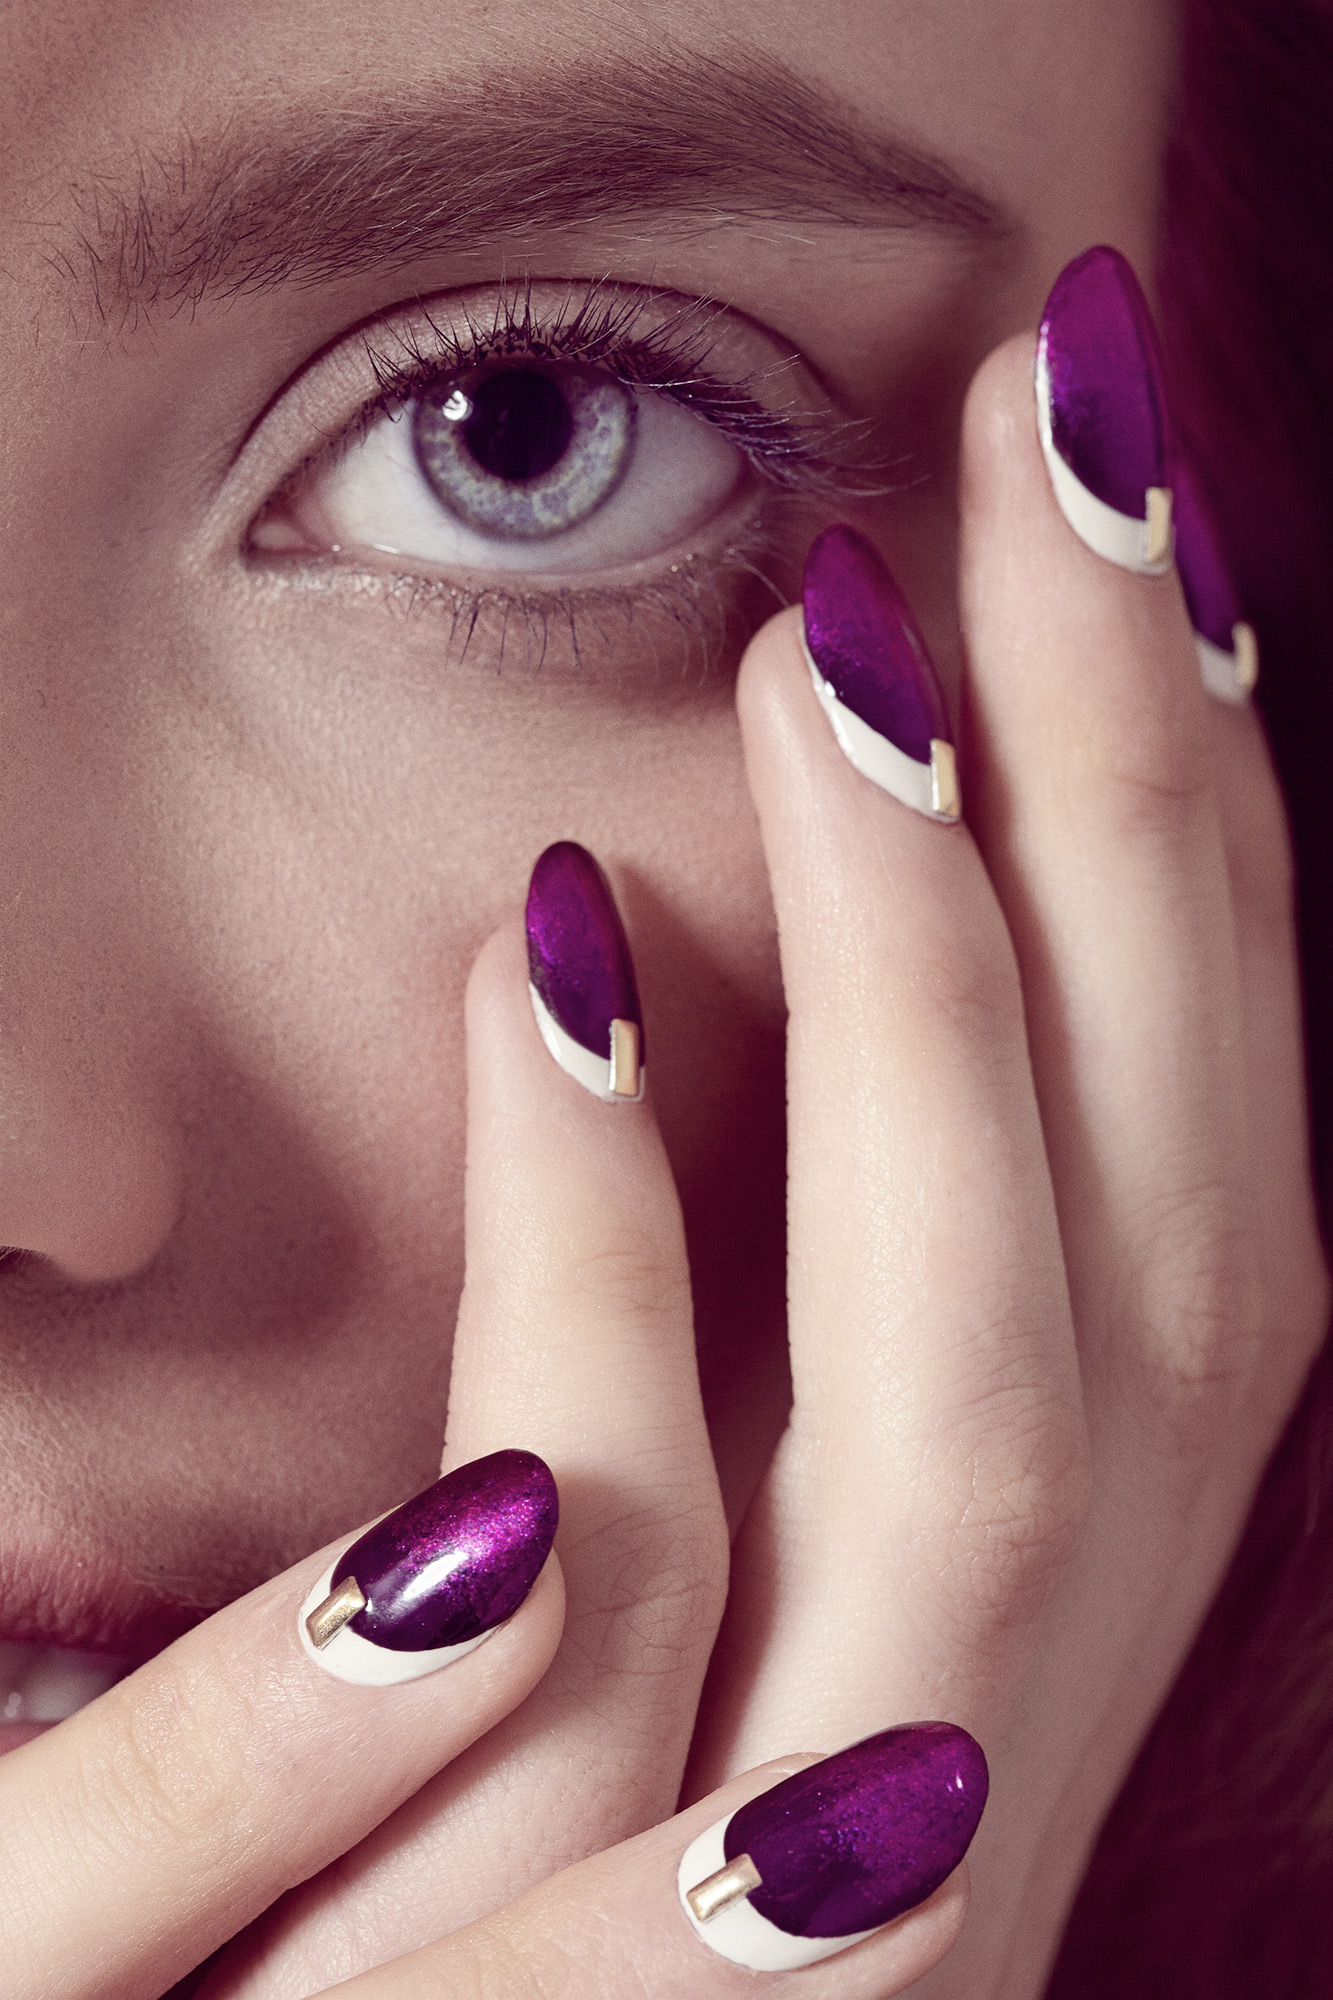 purple-nails-paintbox-embellishments-bli.jpg